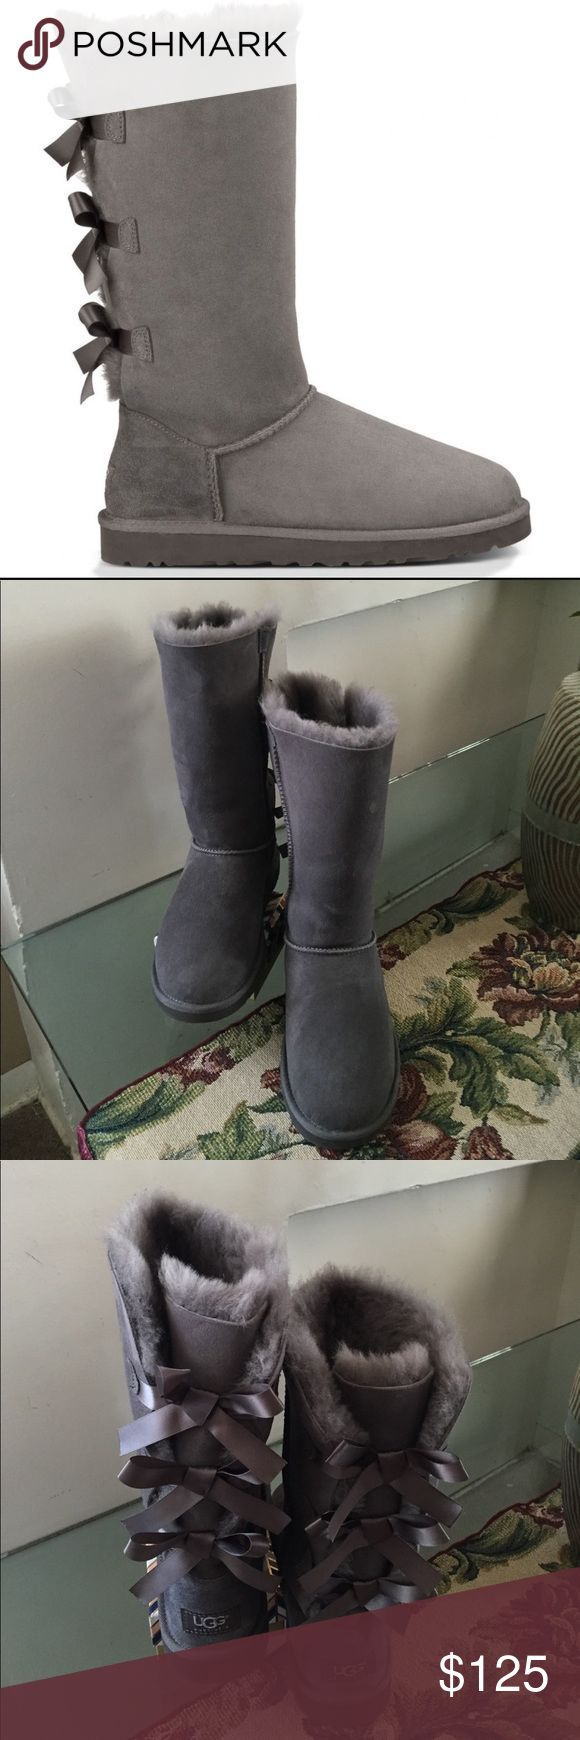 NEW UGG TALL BAILEY TRIPLET BOW New. Without box original ugg. Big kid's size 4/women's size 6 UGG Shoes Winter & Rain Boots